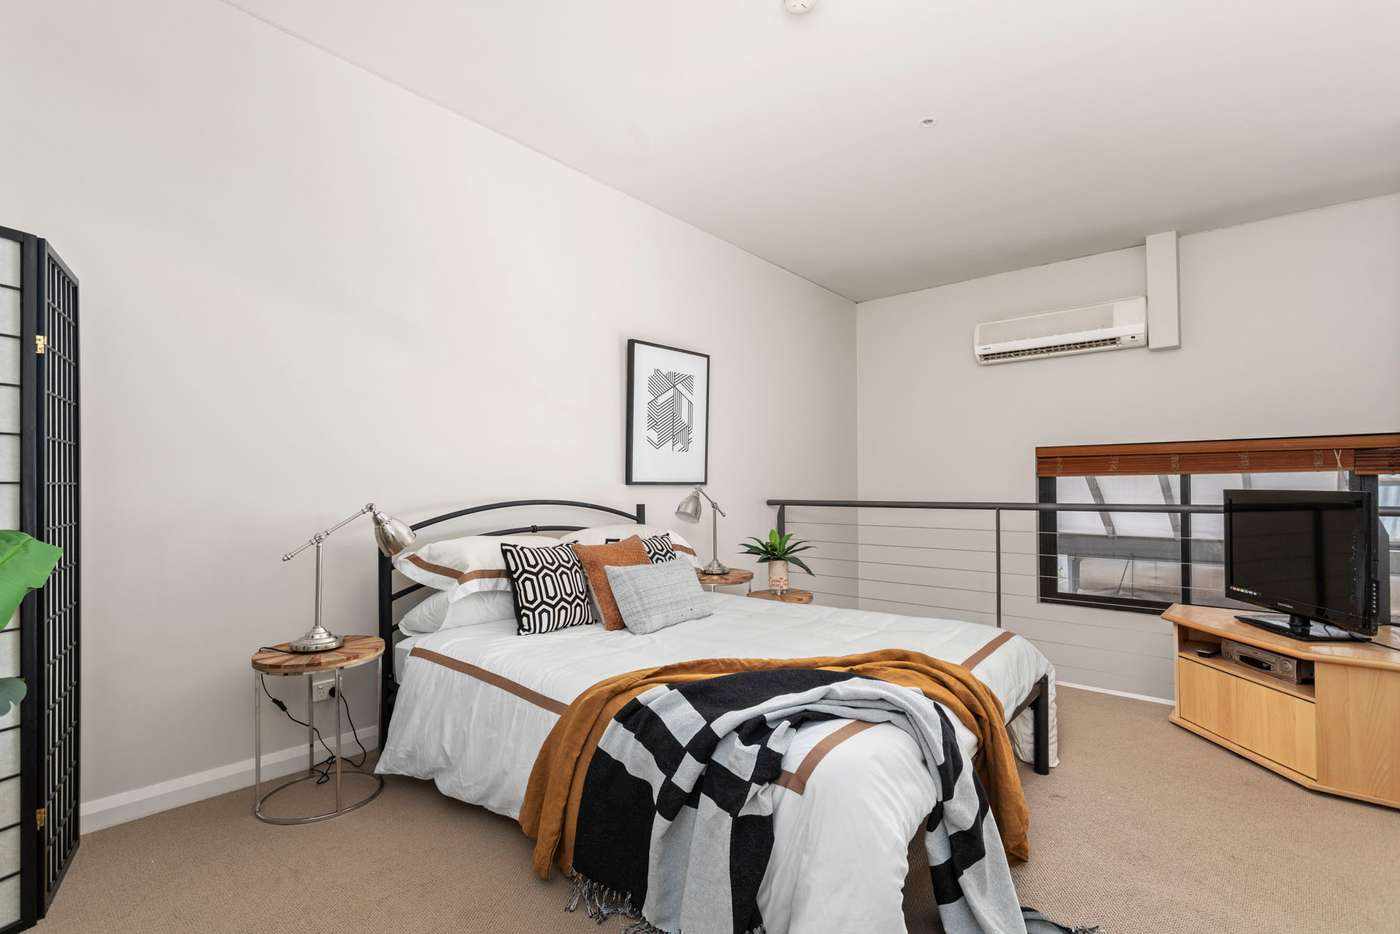 Sixth view of Homely unit listing, 9/4 Centro Avenue, Subiaco WA 6008